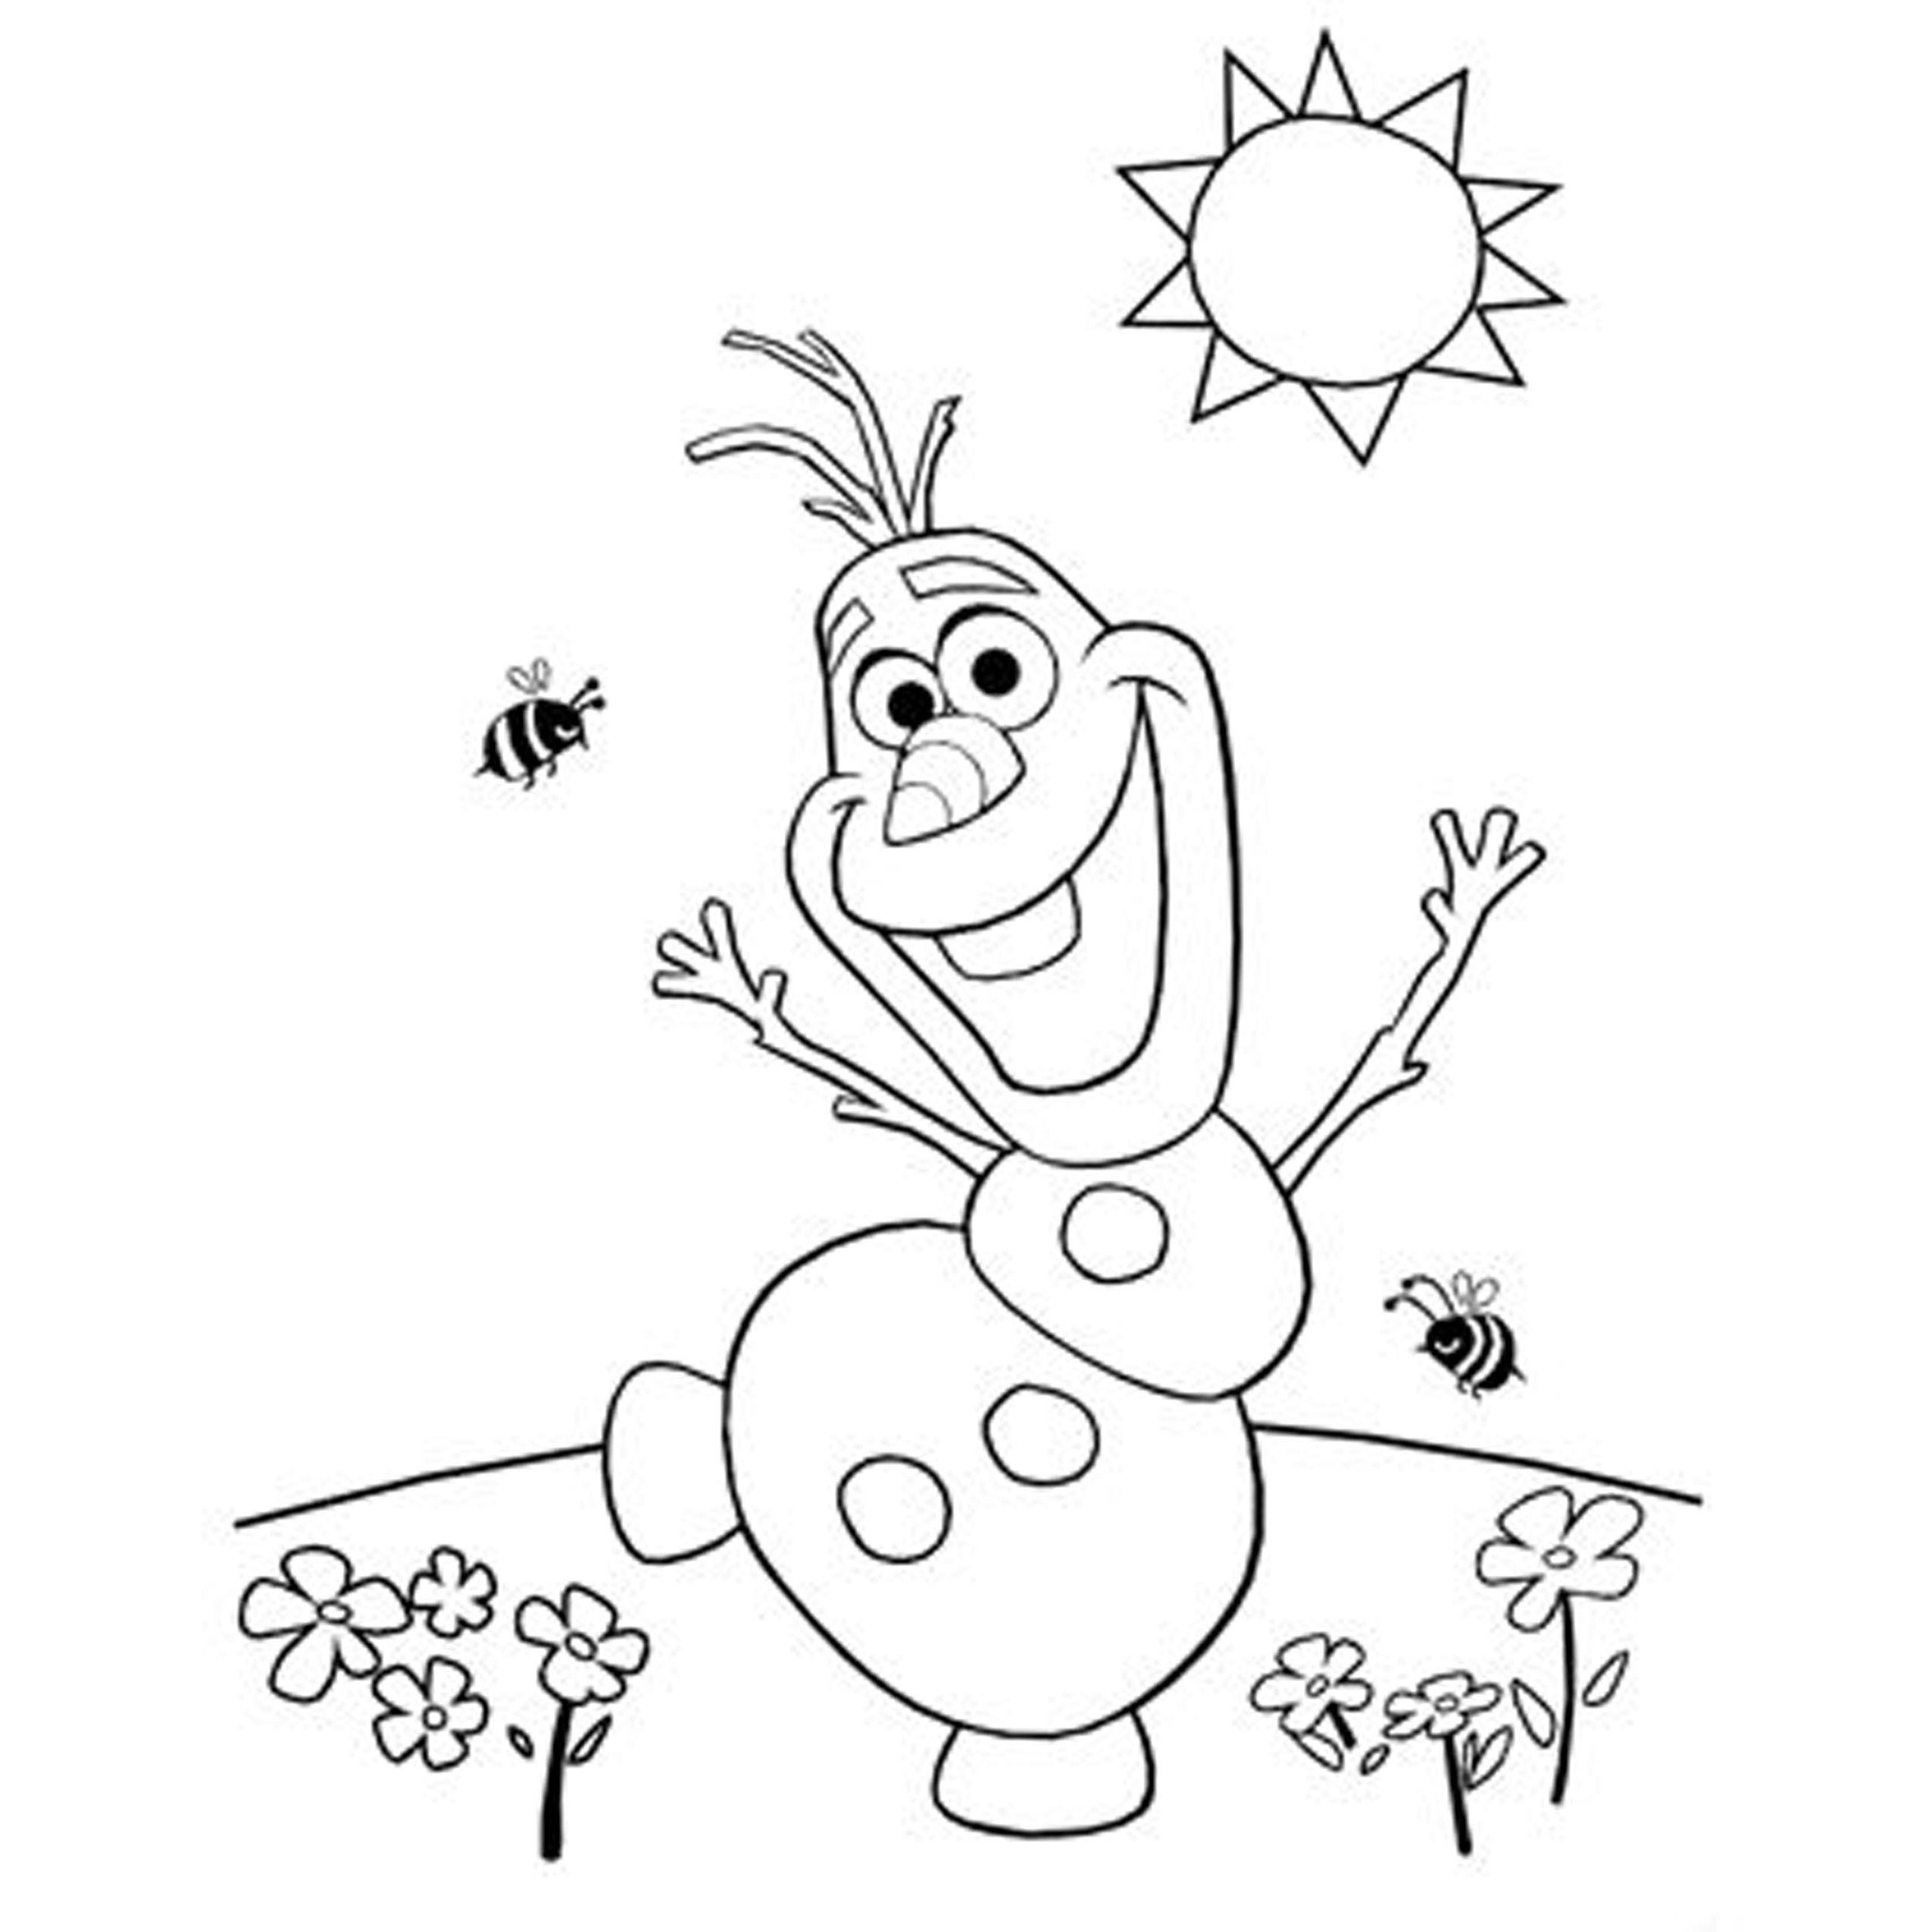 2550x2550 Reward Olaf The Snowman Coloring Pages Is Happy Free Page Disney